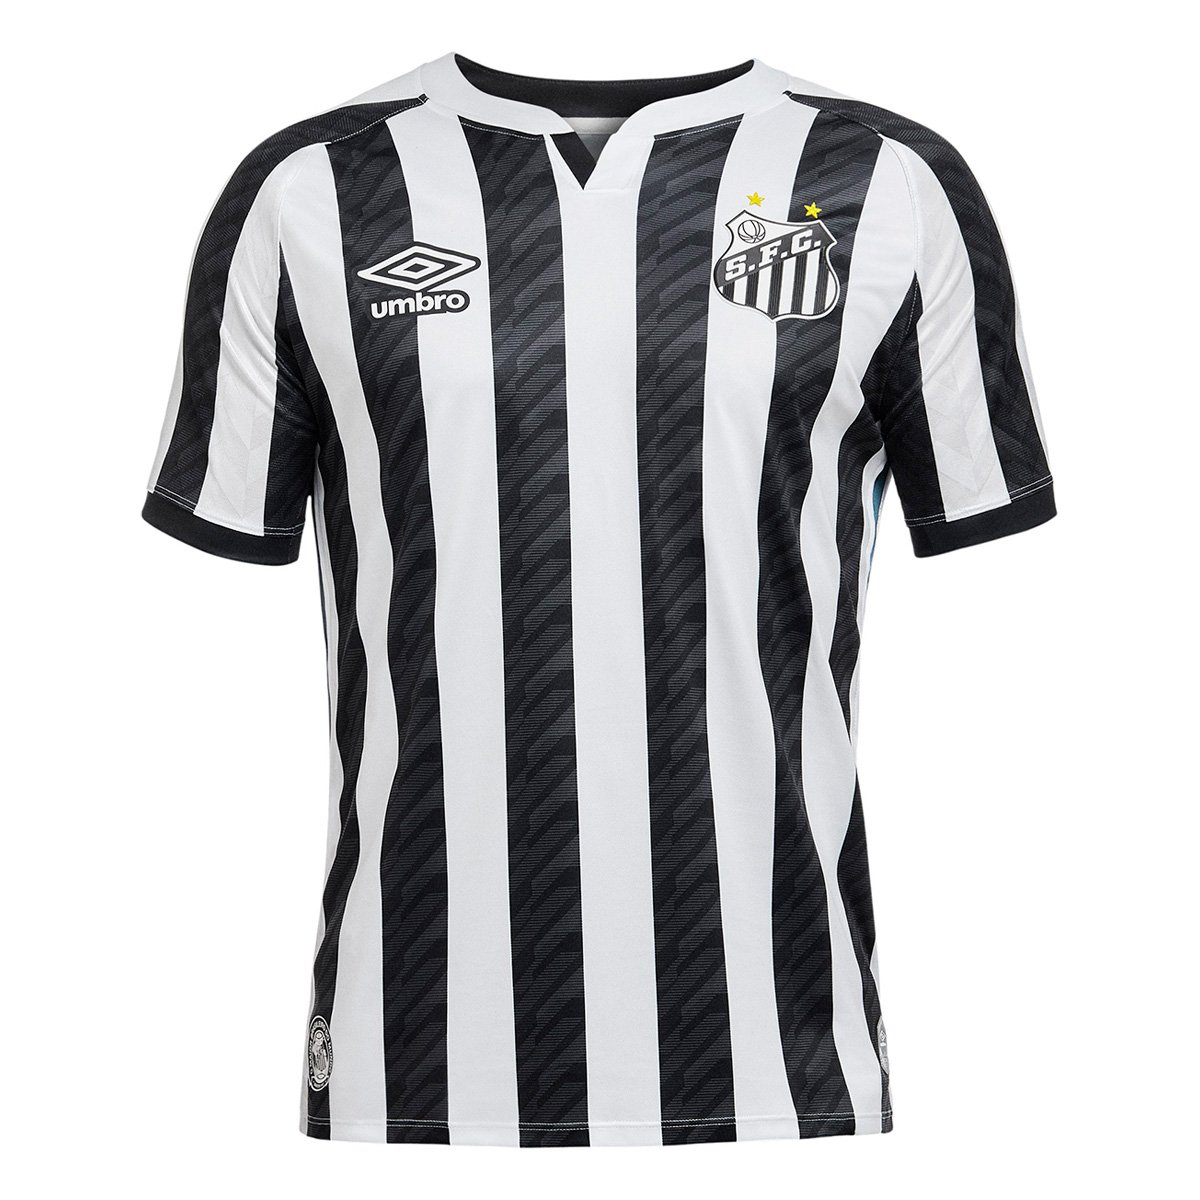 https://assets-mantosdofutebol.sfo2.digitaloceanspaces.com/wp-content/uploads/2020/05/Camisas-do-Santos-FC-2020-2021-Umbro-Listrada-1.jpg